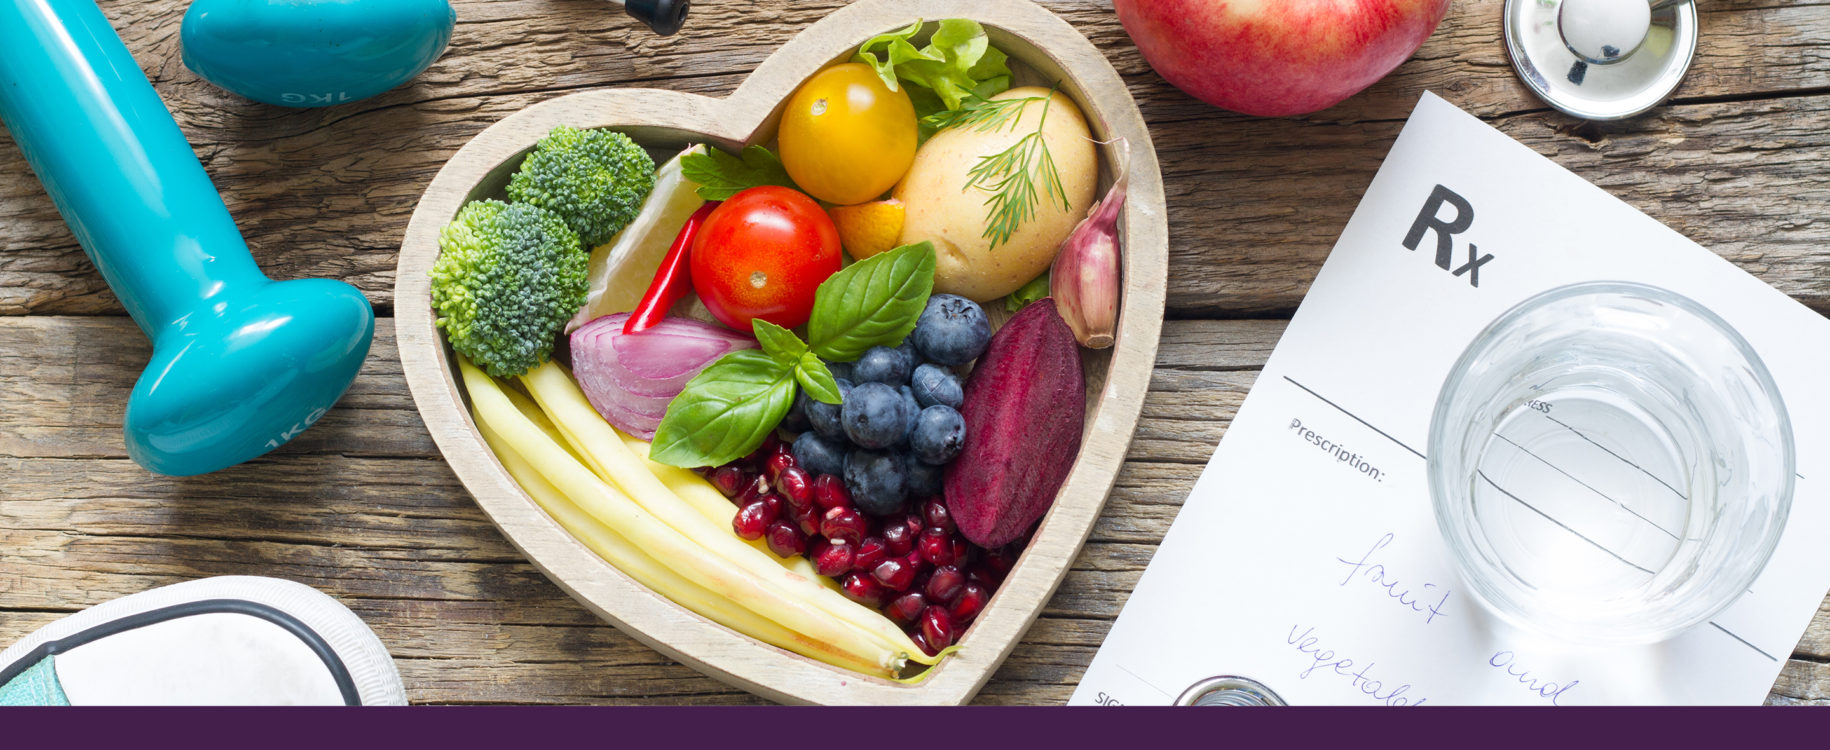 How a naturopathic doctor can help with gut health